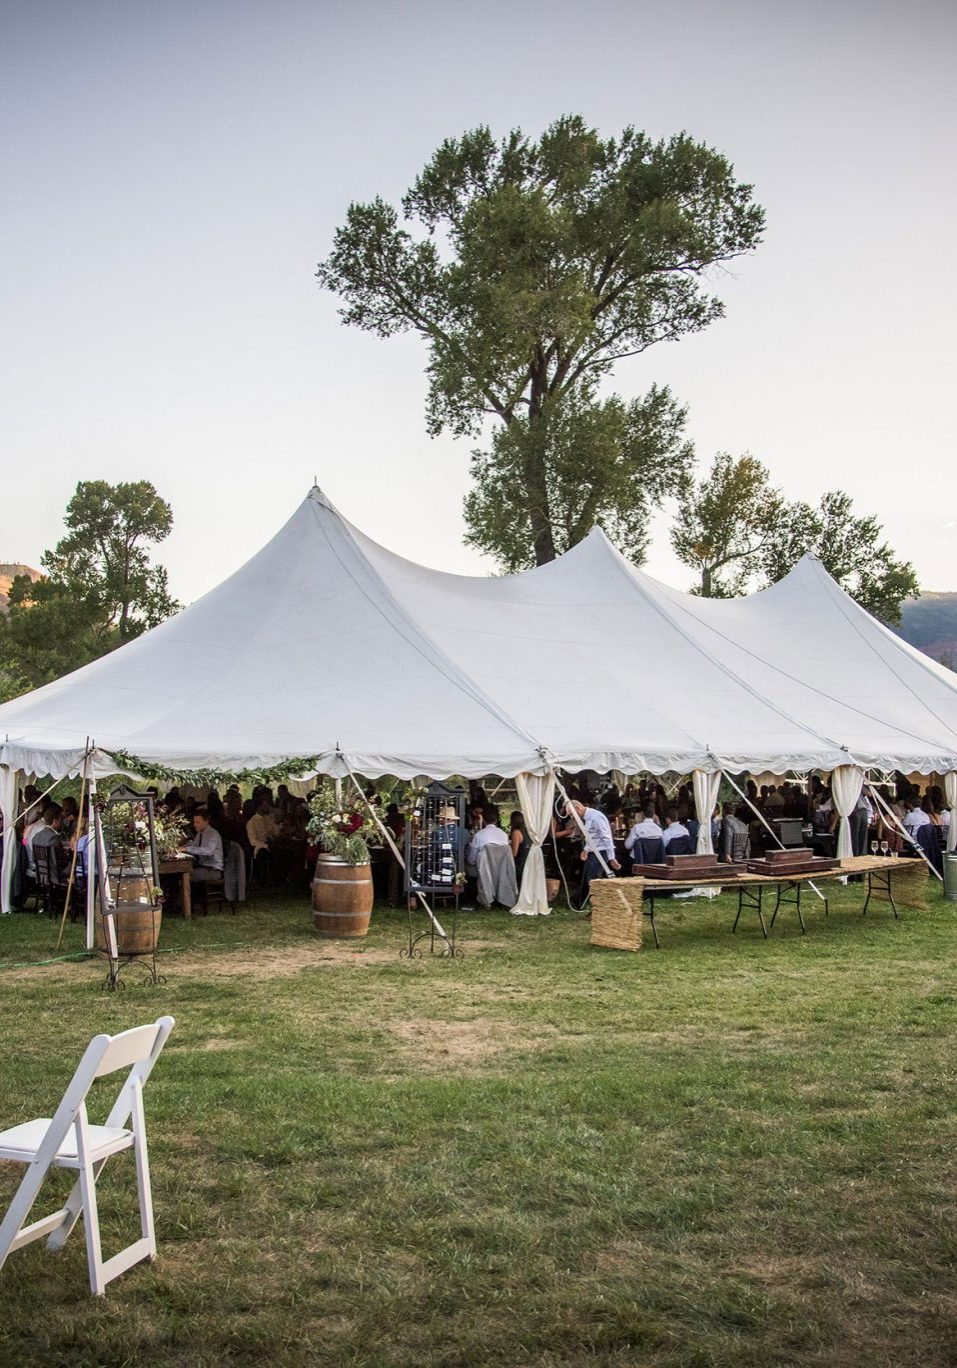 A Durango Tent Wedding